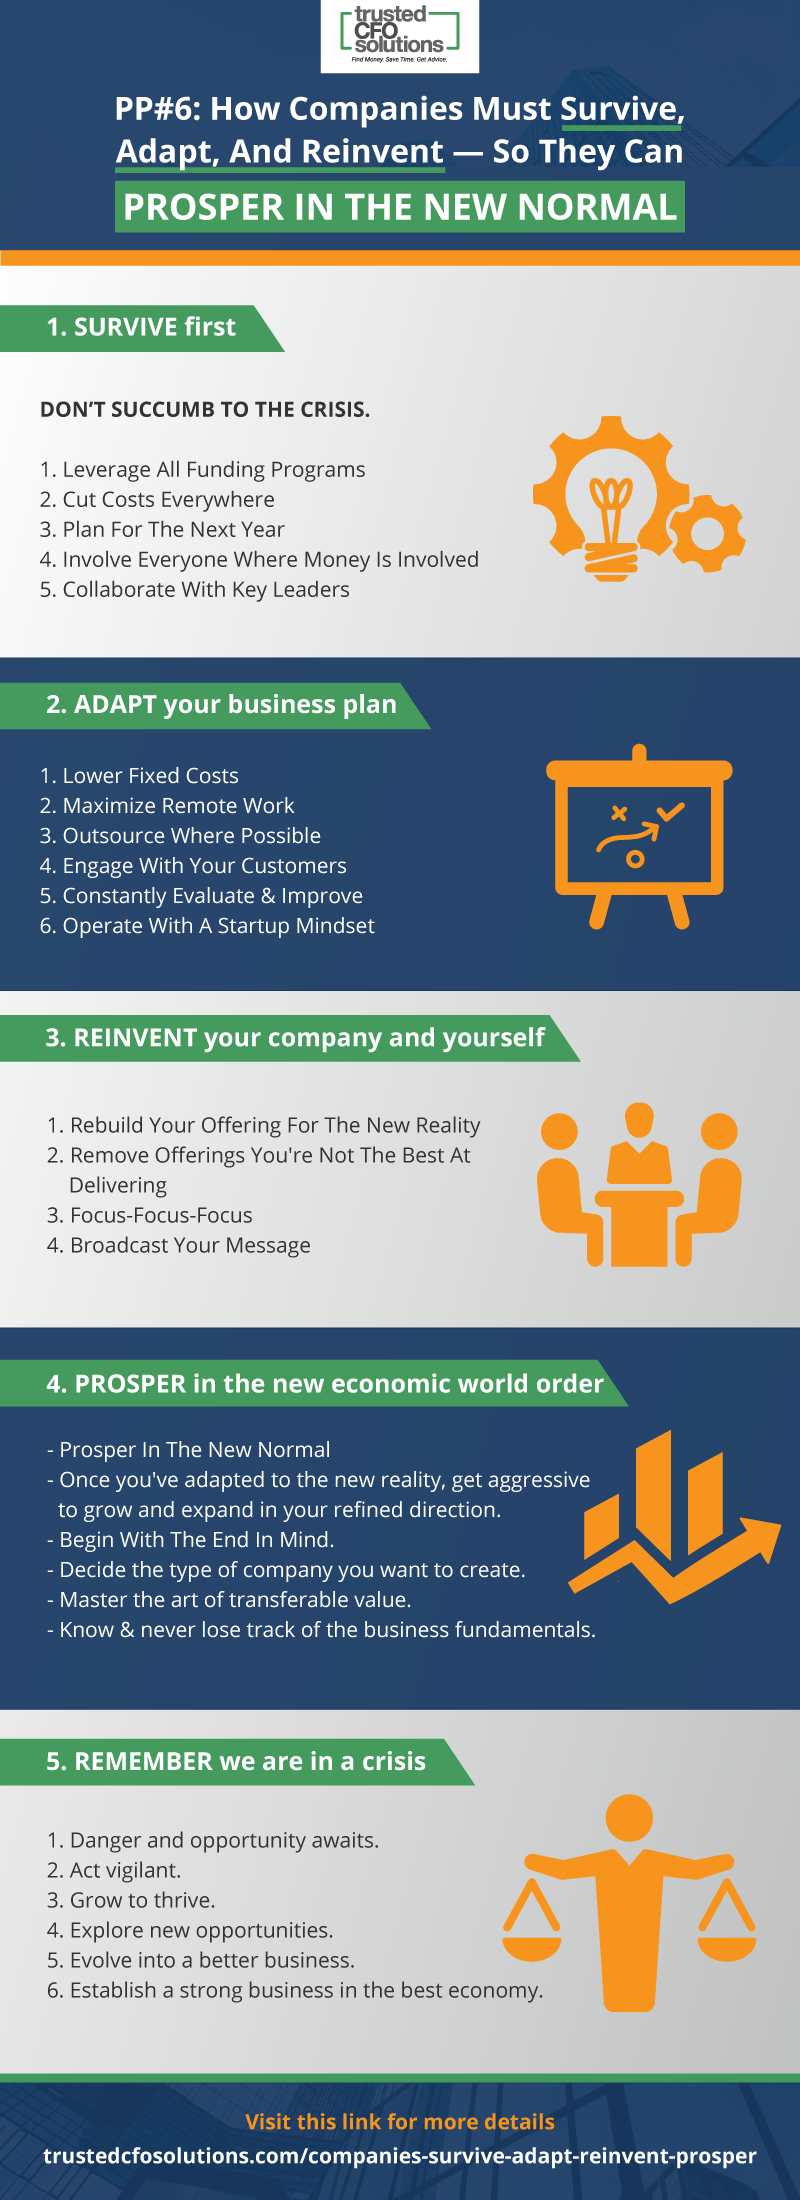 Prosper or Perish #6: How Companies Must Survive, Adapt, And Reinvent — So They Can Prosper In The New Normal Infographic